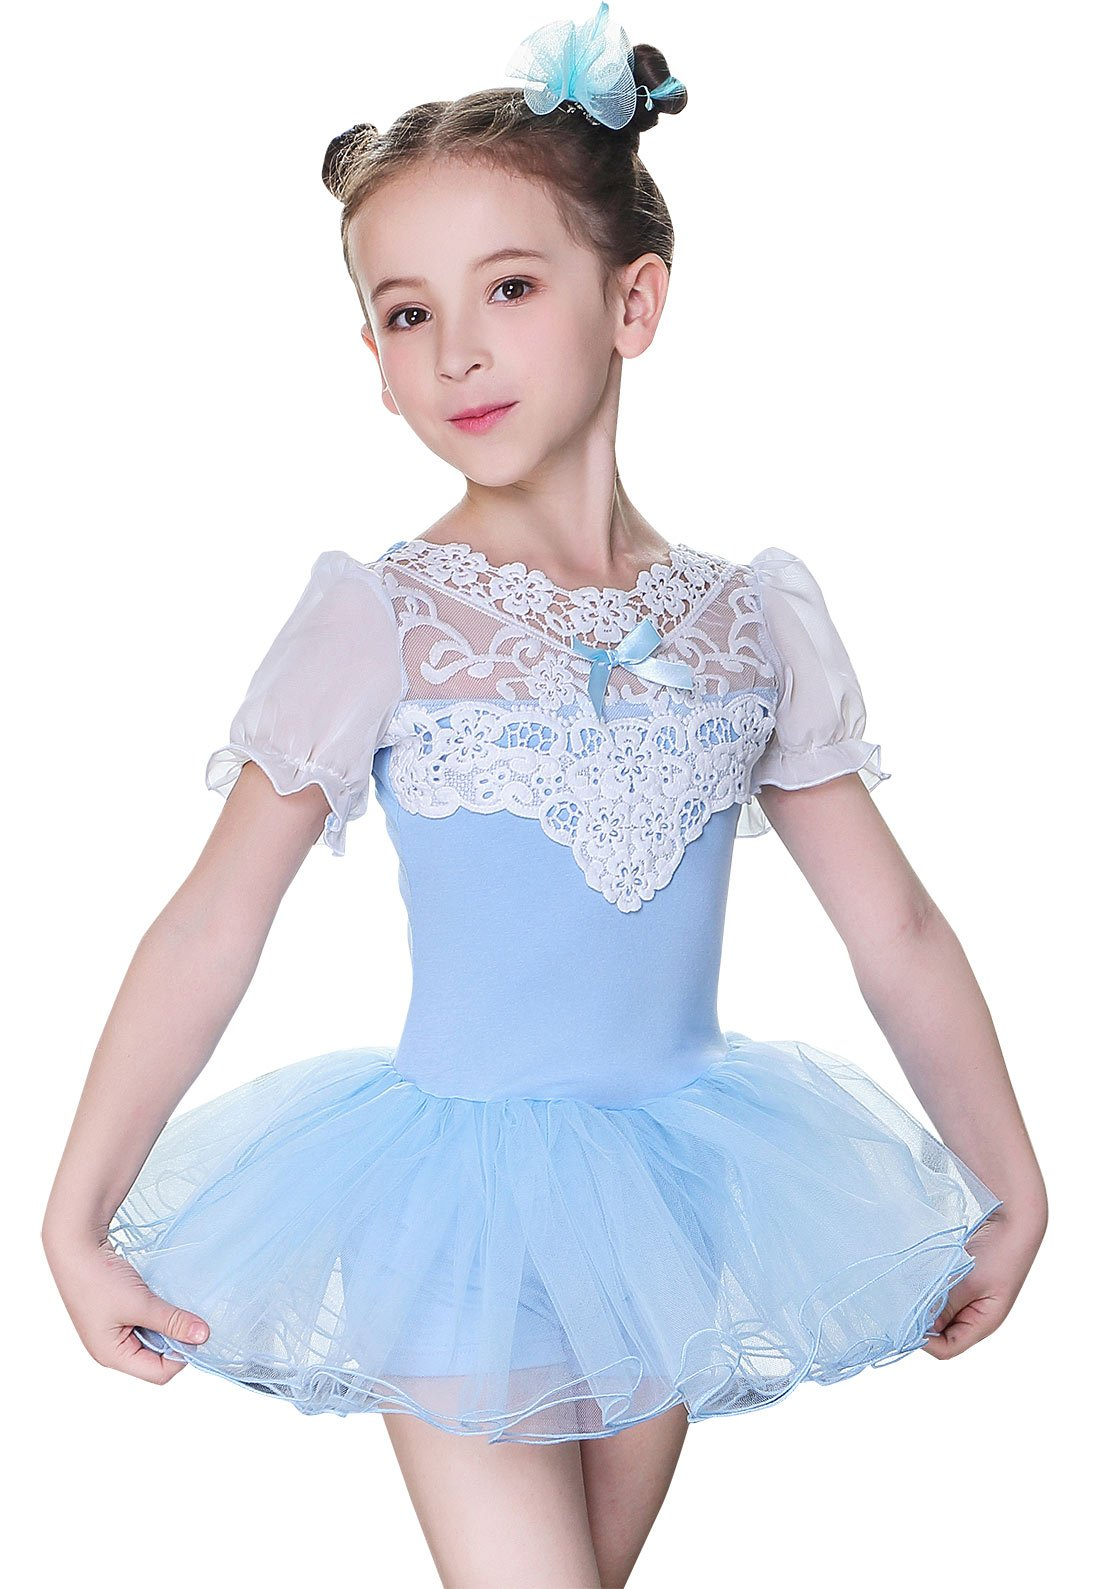 Baby Girl Dance Ballet Dress Breathable Chiffon Performance Outfit for Party Wedding Retical Blue 6-7Y